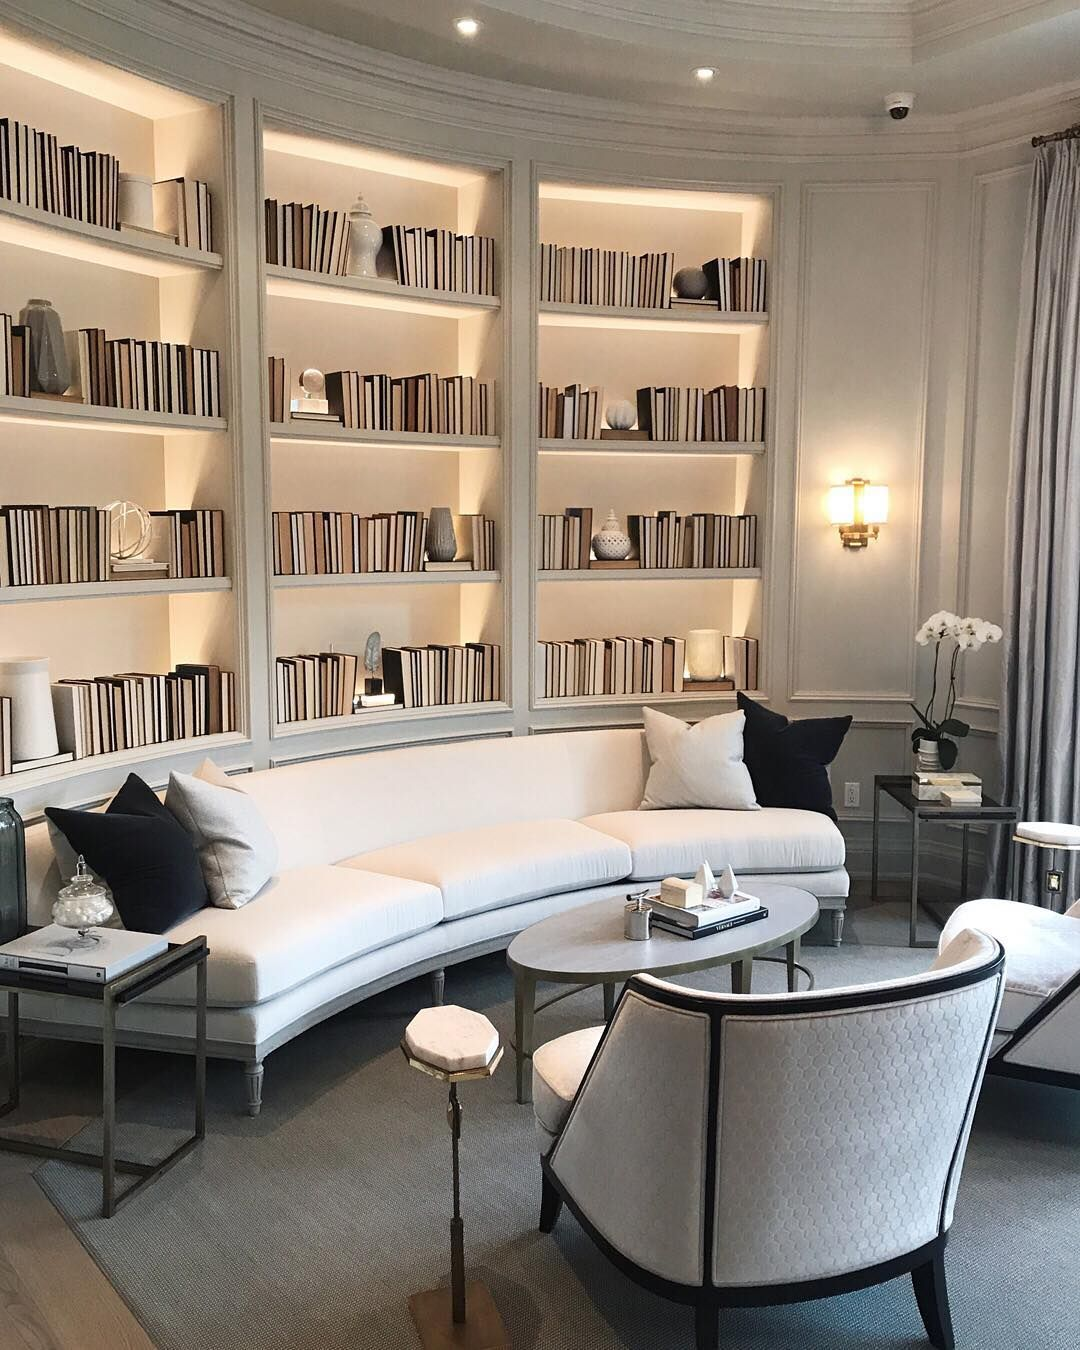 Beautiful library space home interior bookshelves for Interior designer gesucht